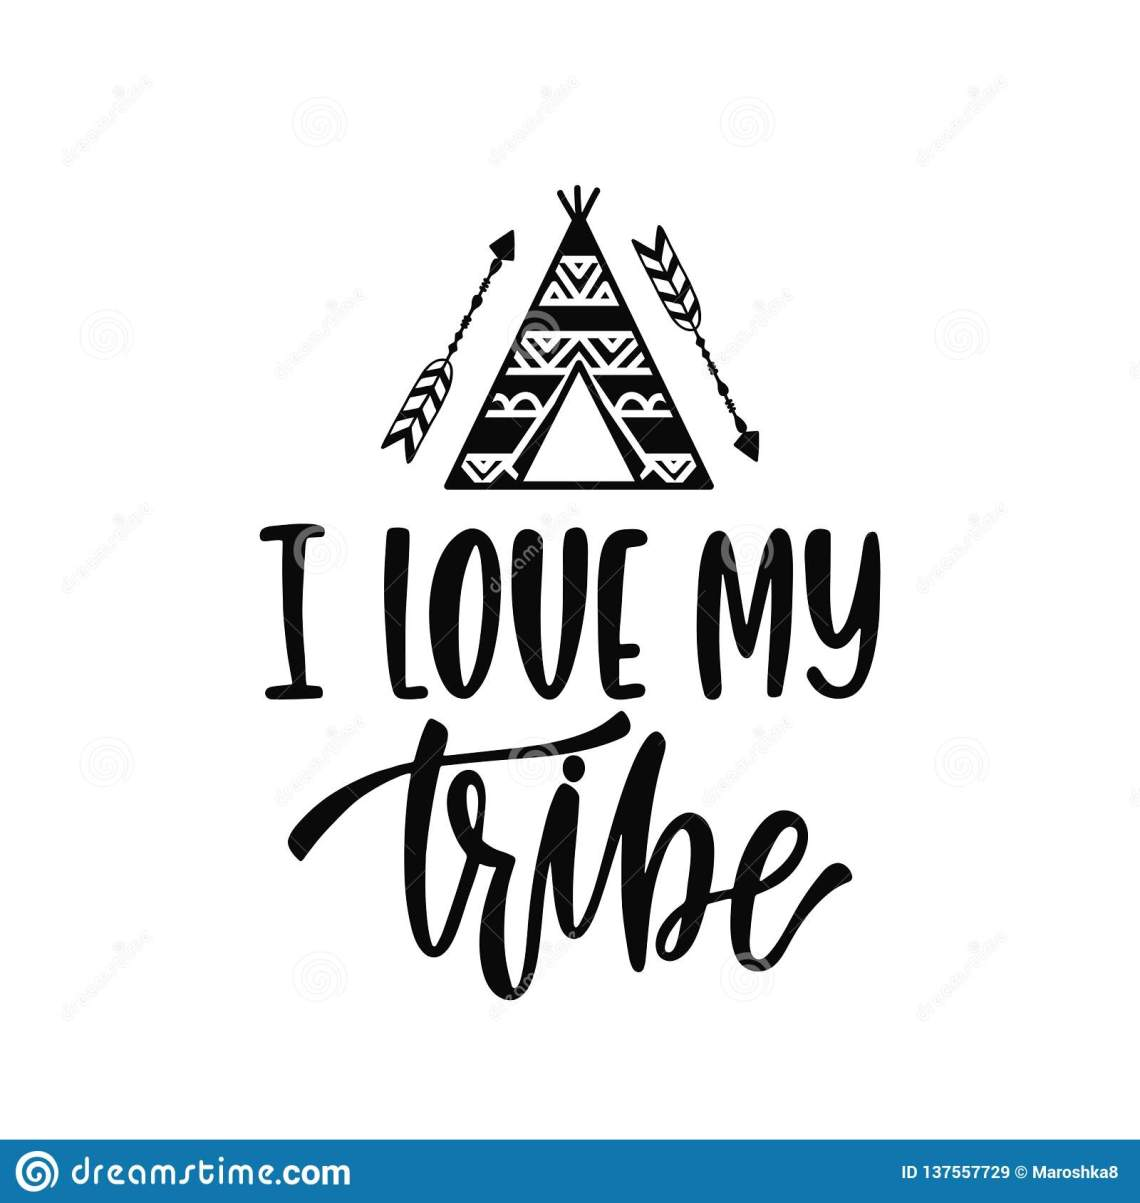 Download Inspirational Vector Lettering Phrase: I Love My Tribe ...